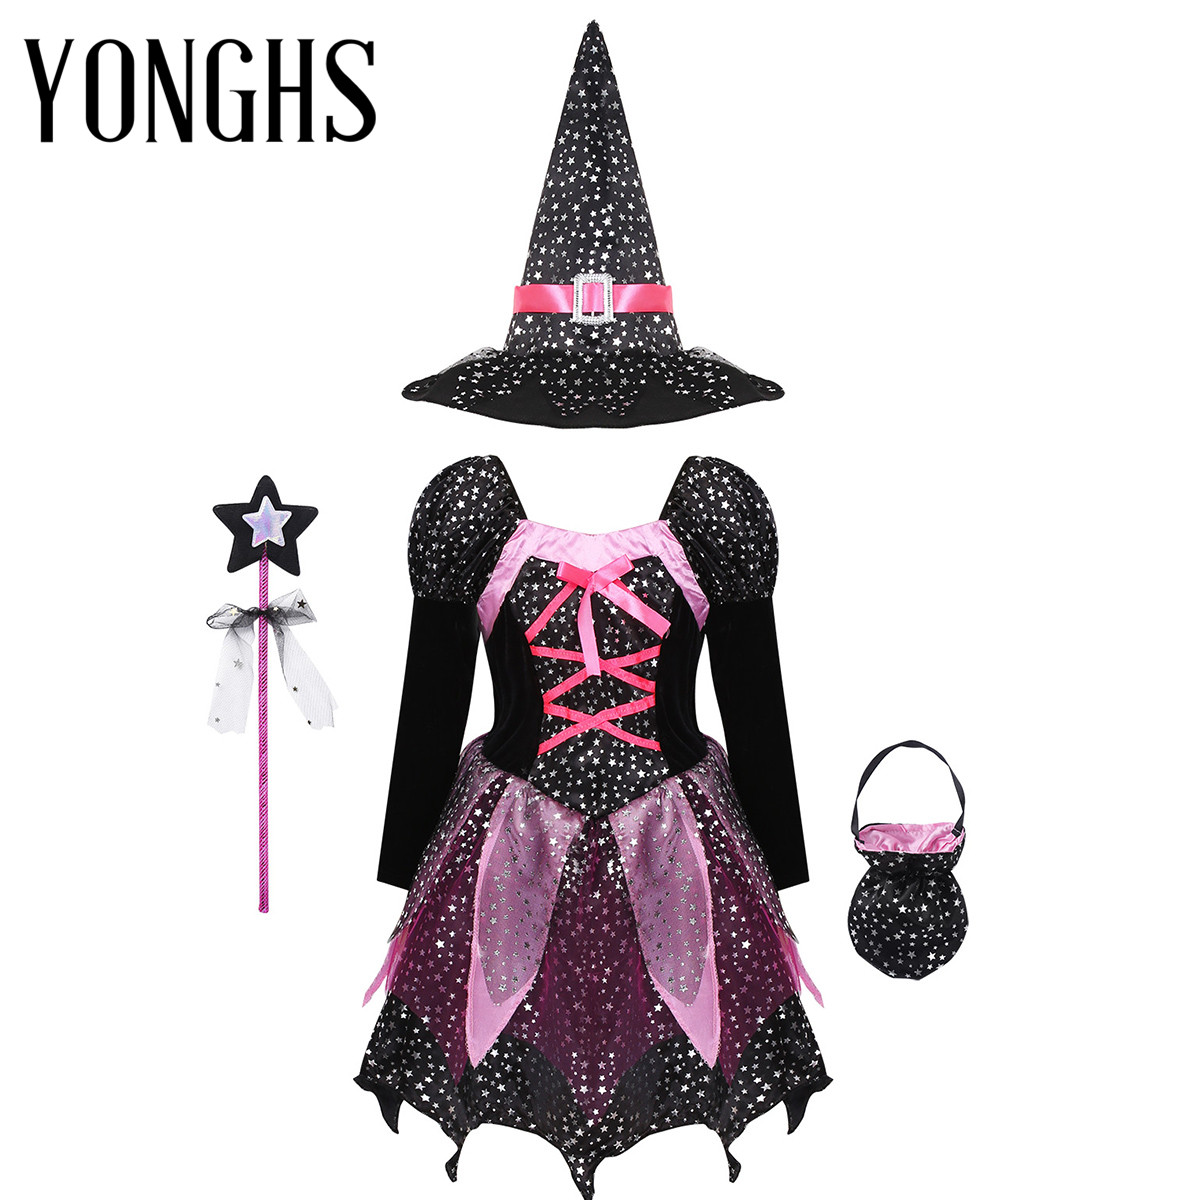 Kids Girls Halloween Witch Cosplay Costume Sparkly Silver Star Printed Dress with Pointed Hat Wand Candy Bag Set Roleplay Outfit